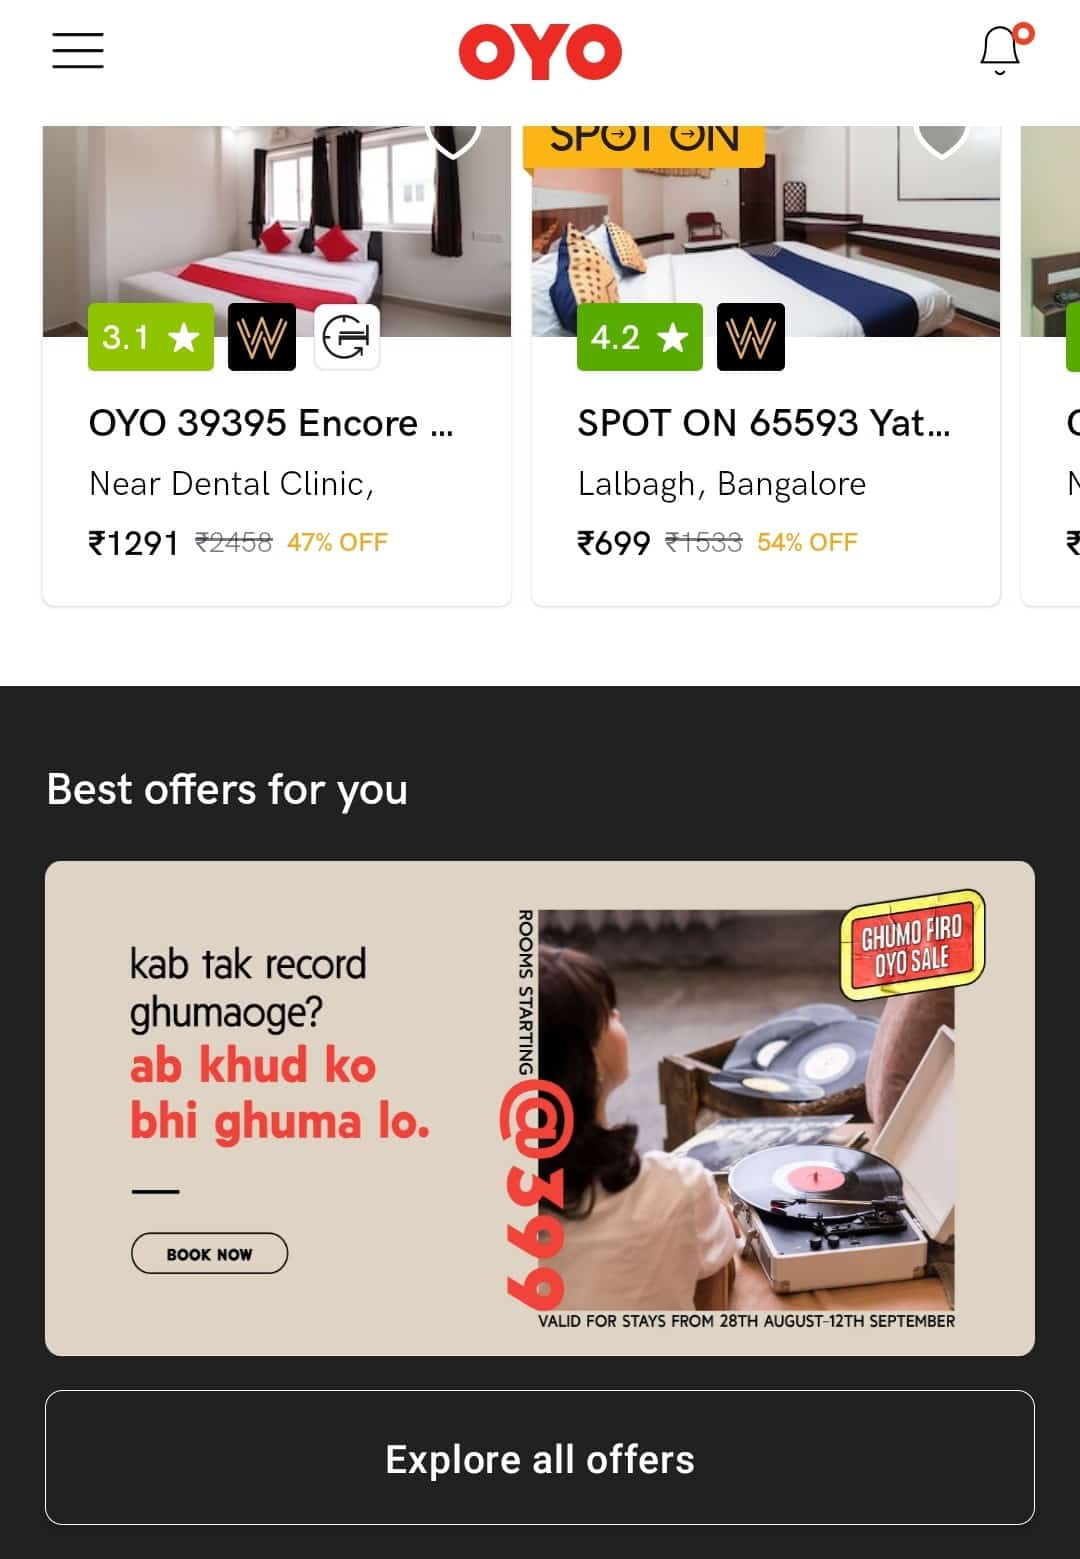 Digital marketing strategy for Travel Agencies: OYO Personalized in-app banners